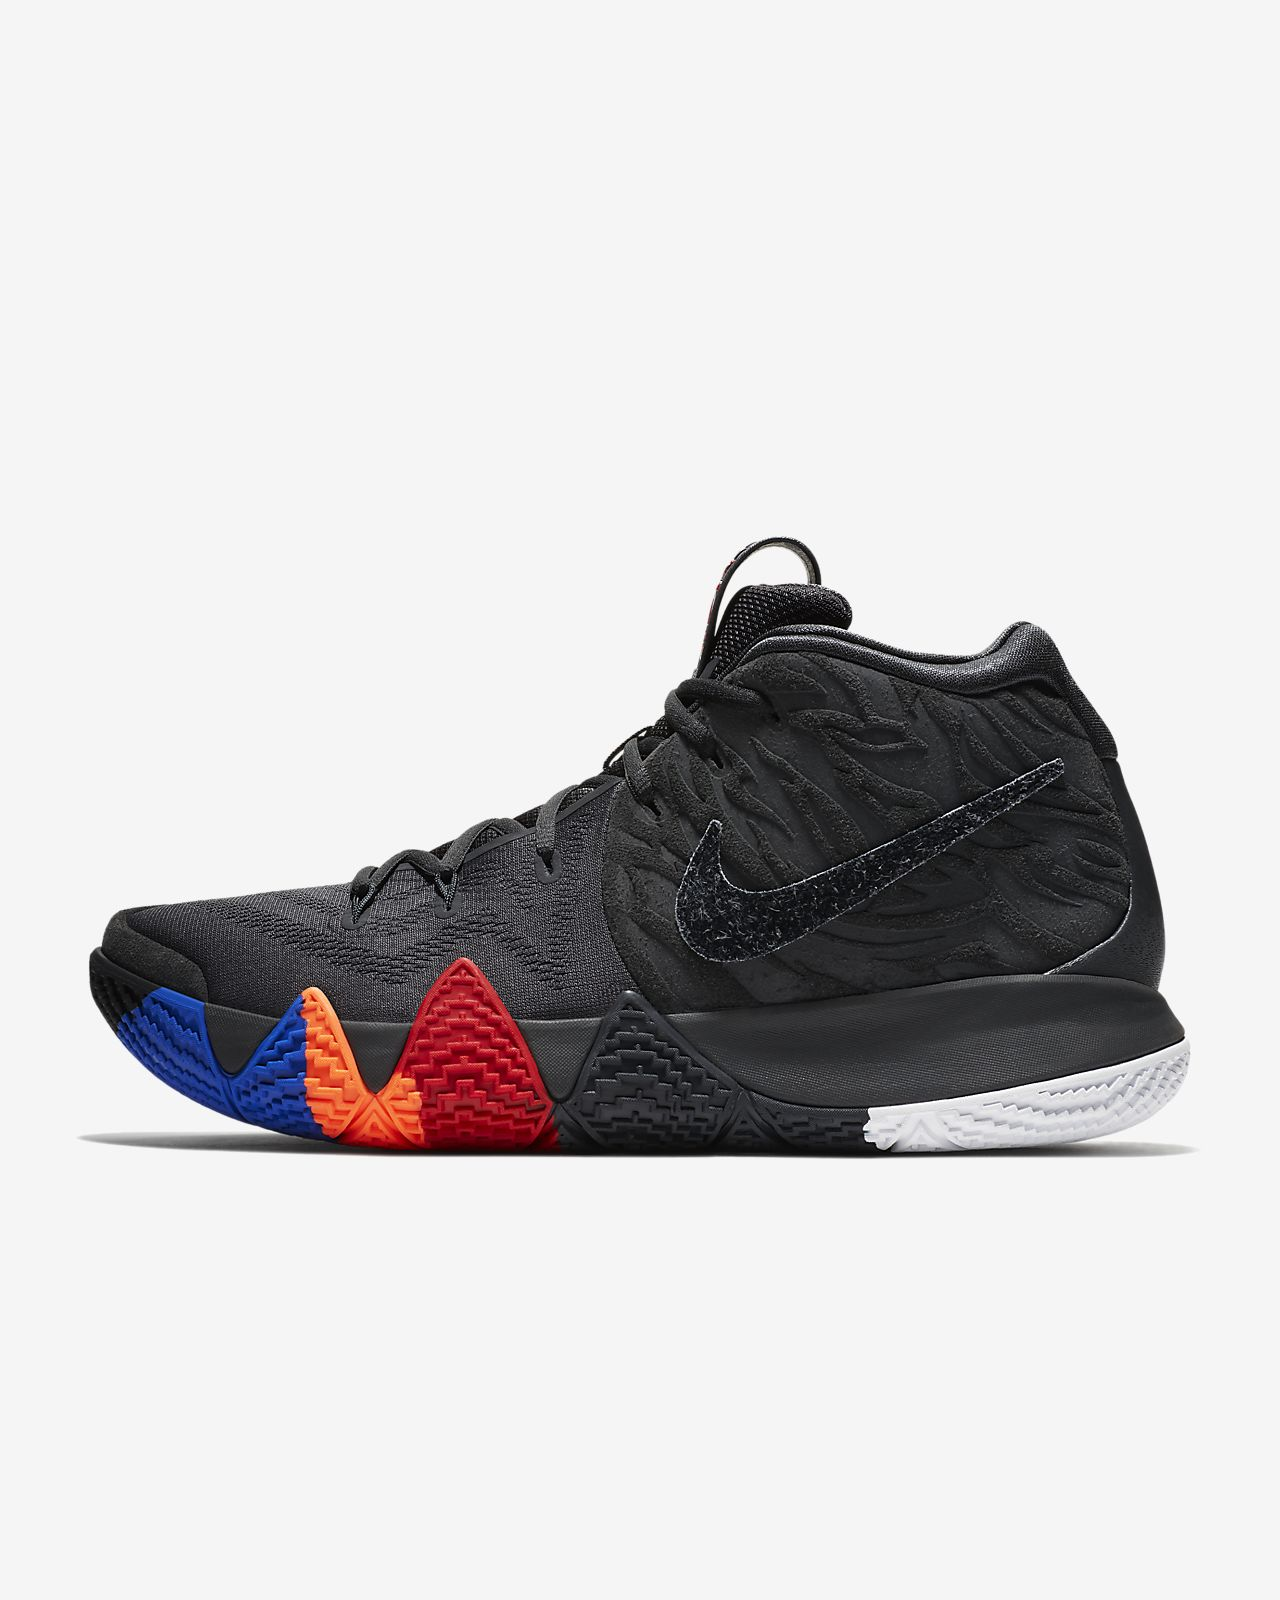 Low Resolution Kyrie 4 Basketball Shoe Kyrie 4 Basketball Shoe 72772a95d